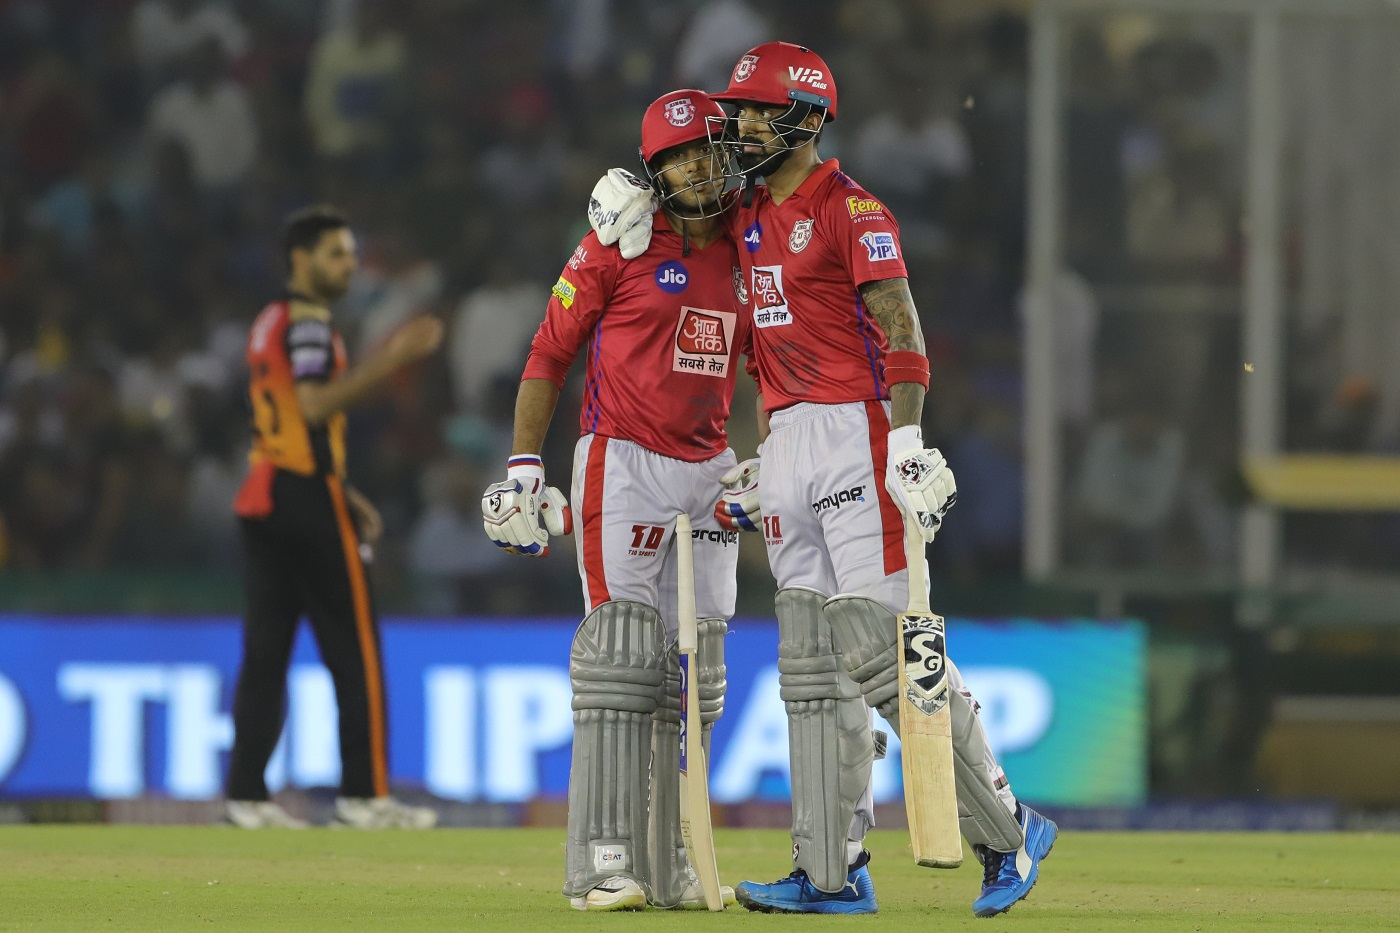 Kings XI Punjab beat Sunrisers Hyderabad by 6 wickets (with